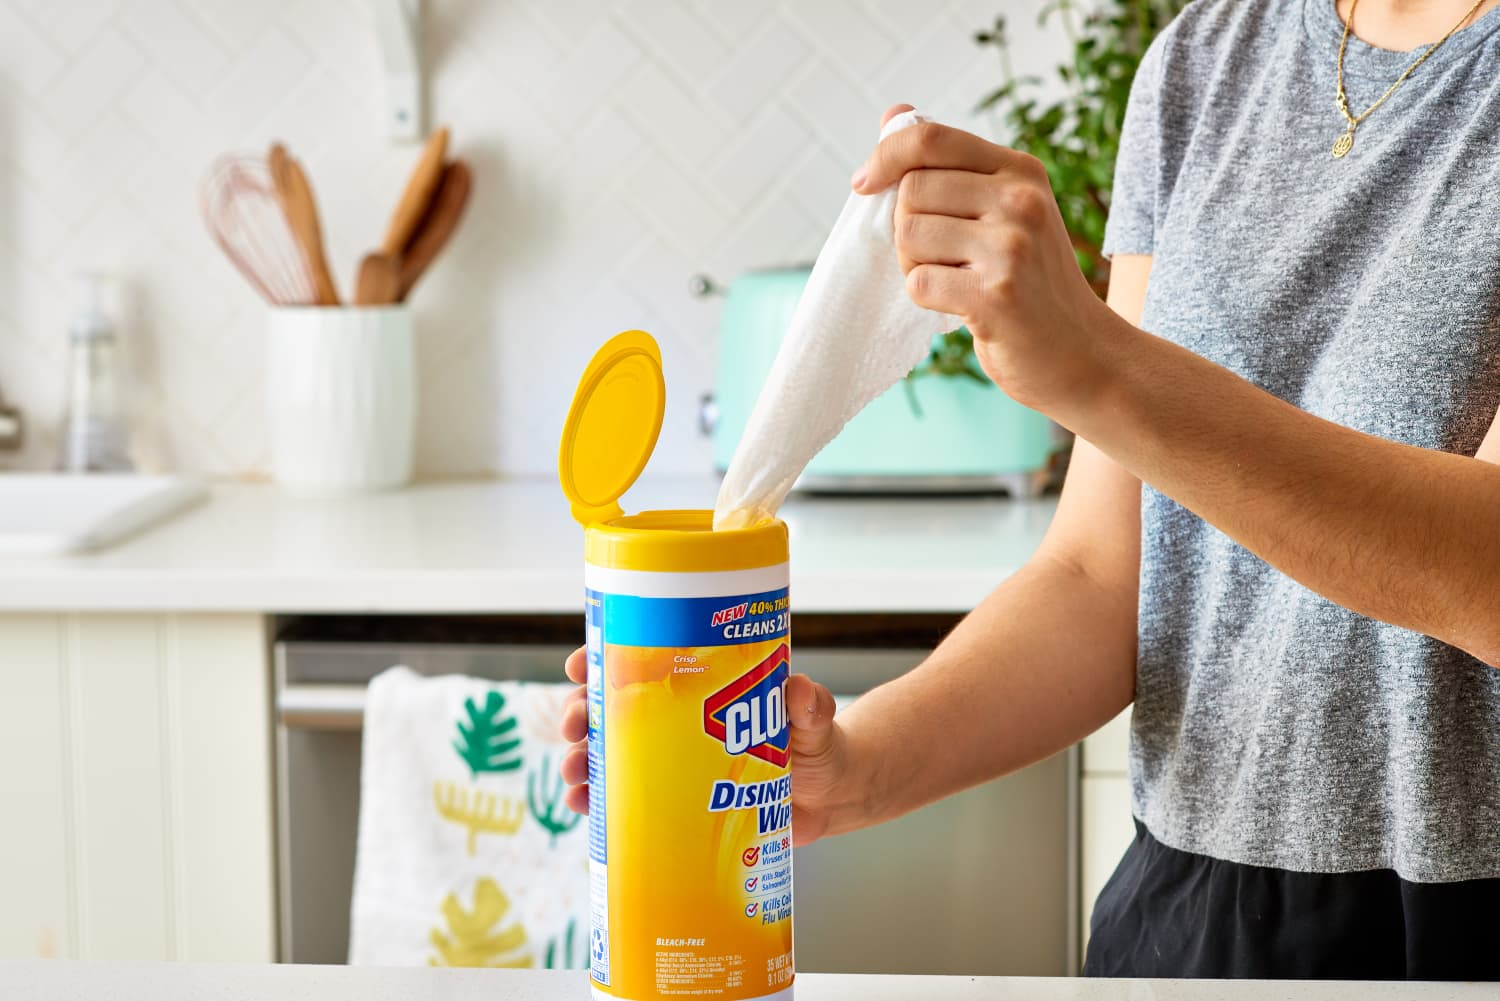 4 Things You Need to Know—Right Now—If You Use Disinfecting Wipes to Clean Your Phone